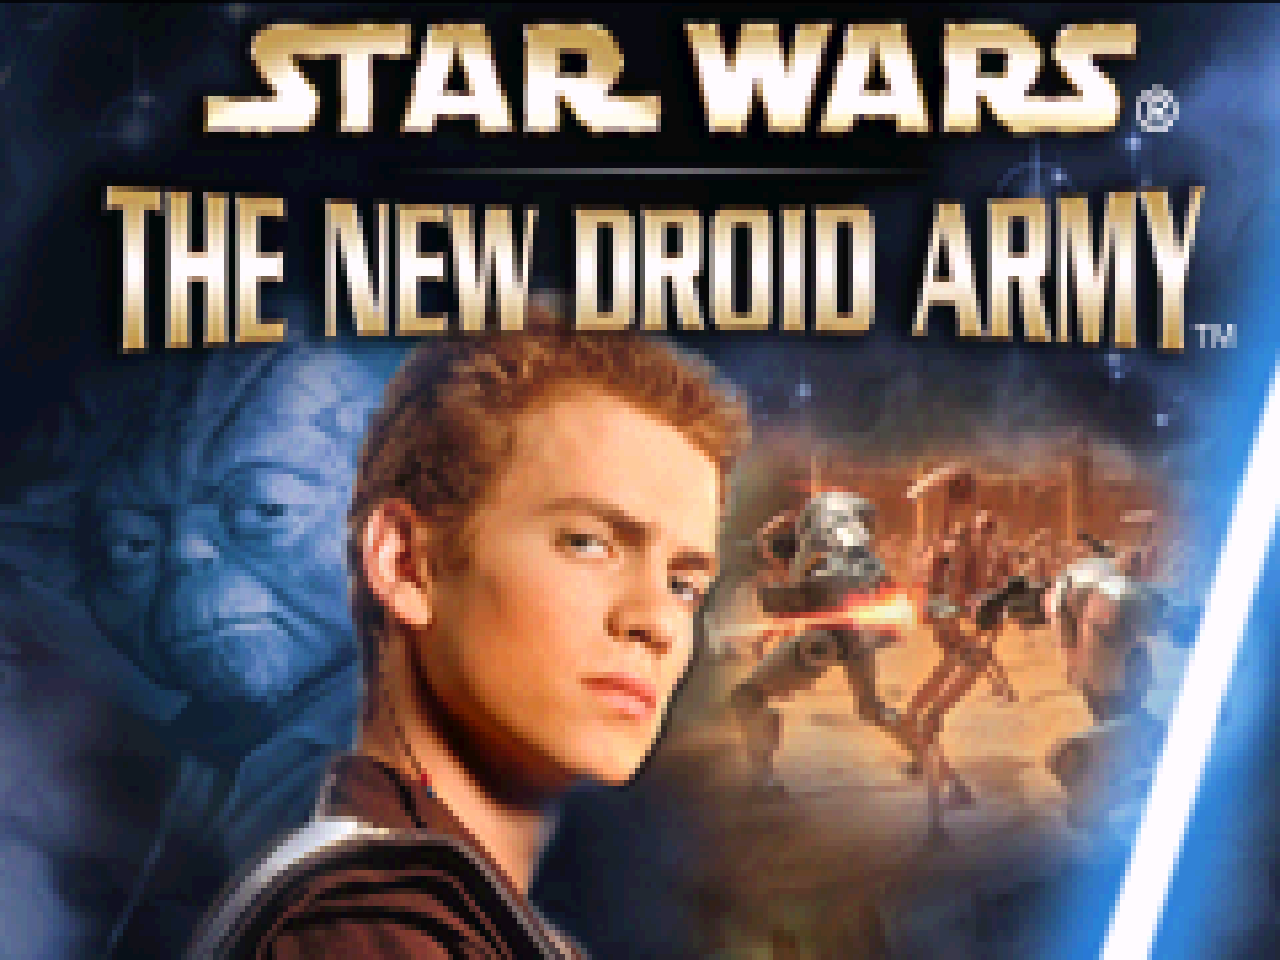 https://s3.eu-west-3.amazonaws.com/games.anthony-dessalles.com/Star Wars The New Droid Army GBA 2020 - Screenshots/Star Wars The New Droid Army-201114-184740.png